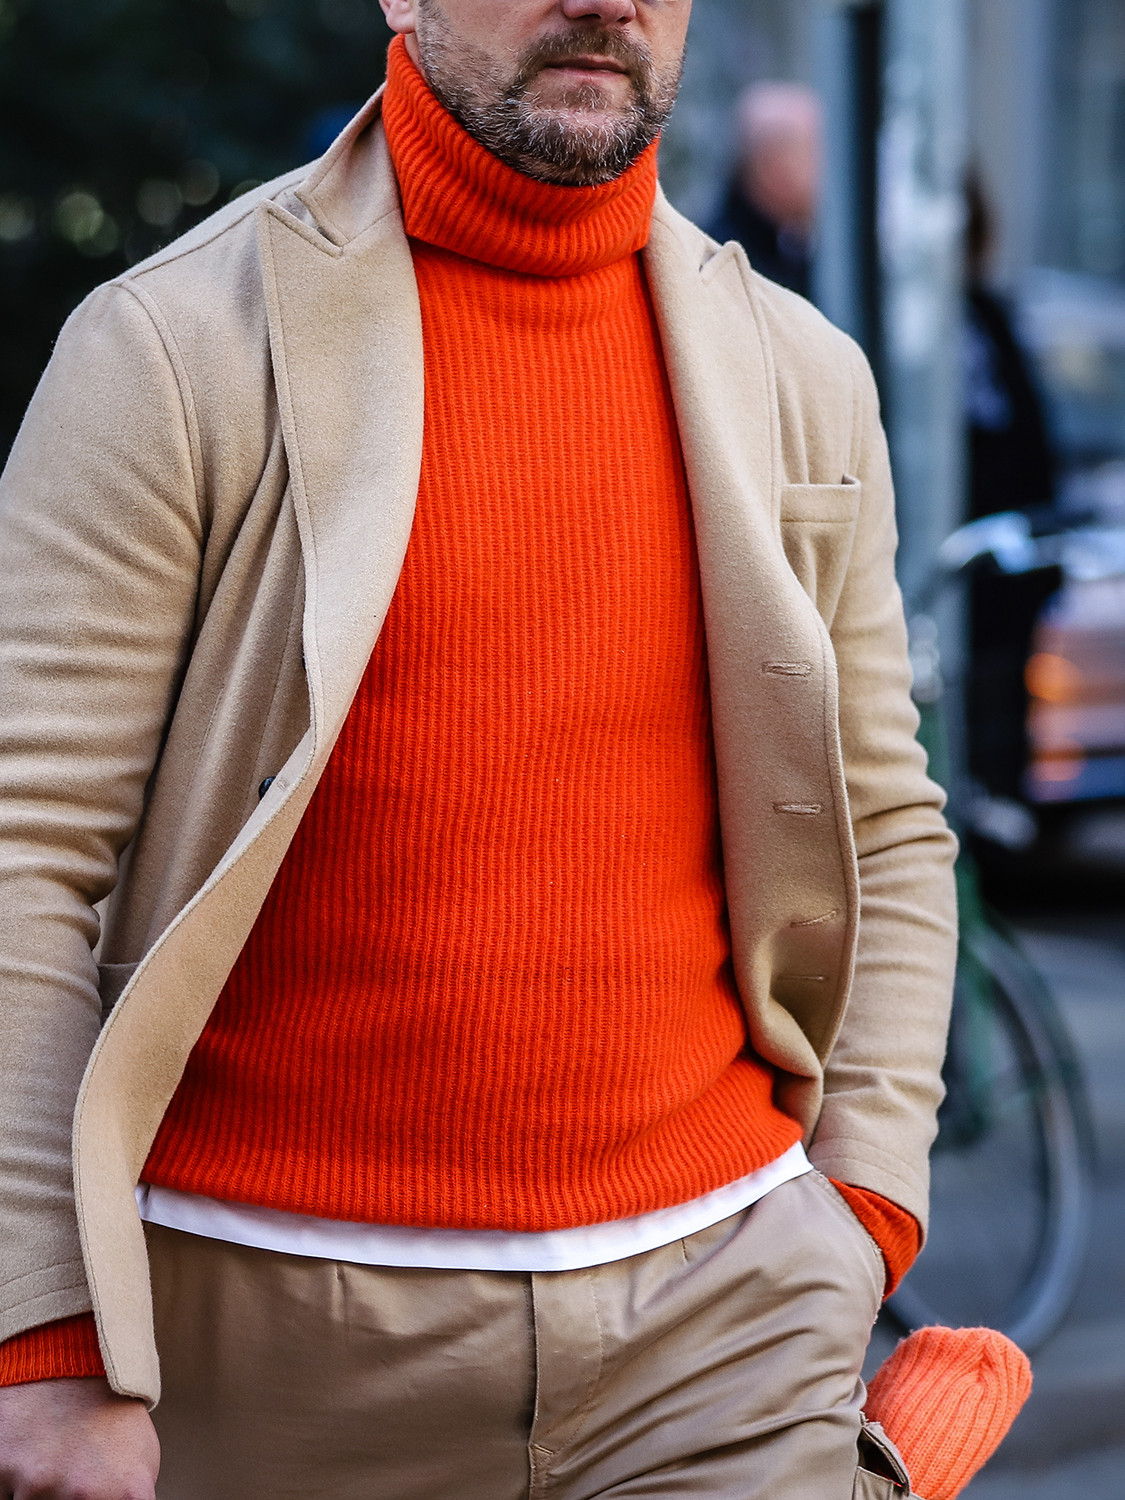 Men's outfit idea for 2021 with neutral single-breasted overcoat, orange plain crew neck knitted jumper, white crew neck t-shirt, stone chinos, lace-up leather boots. Suitable for autumn and winter.